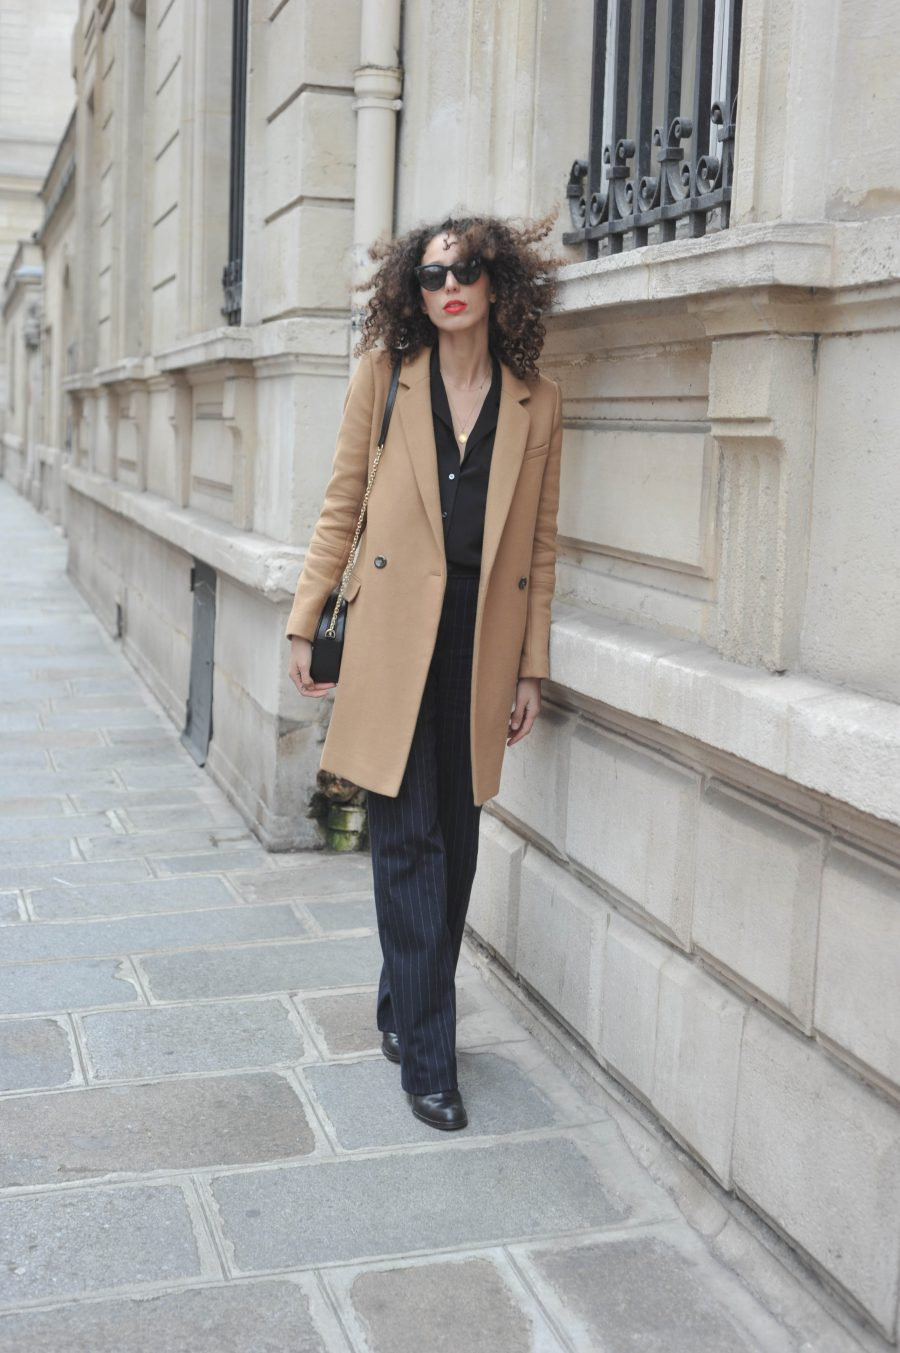 manteau-trench-coat_